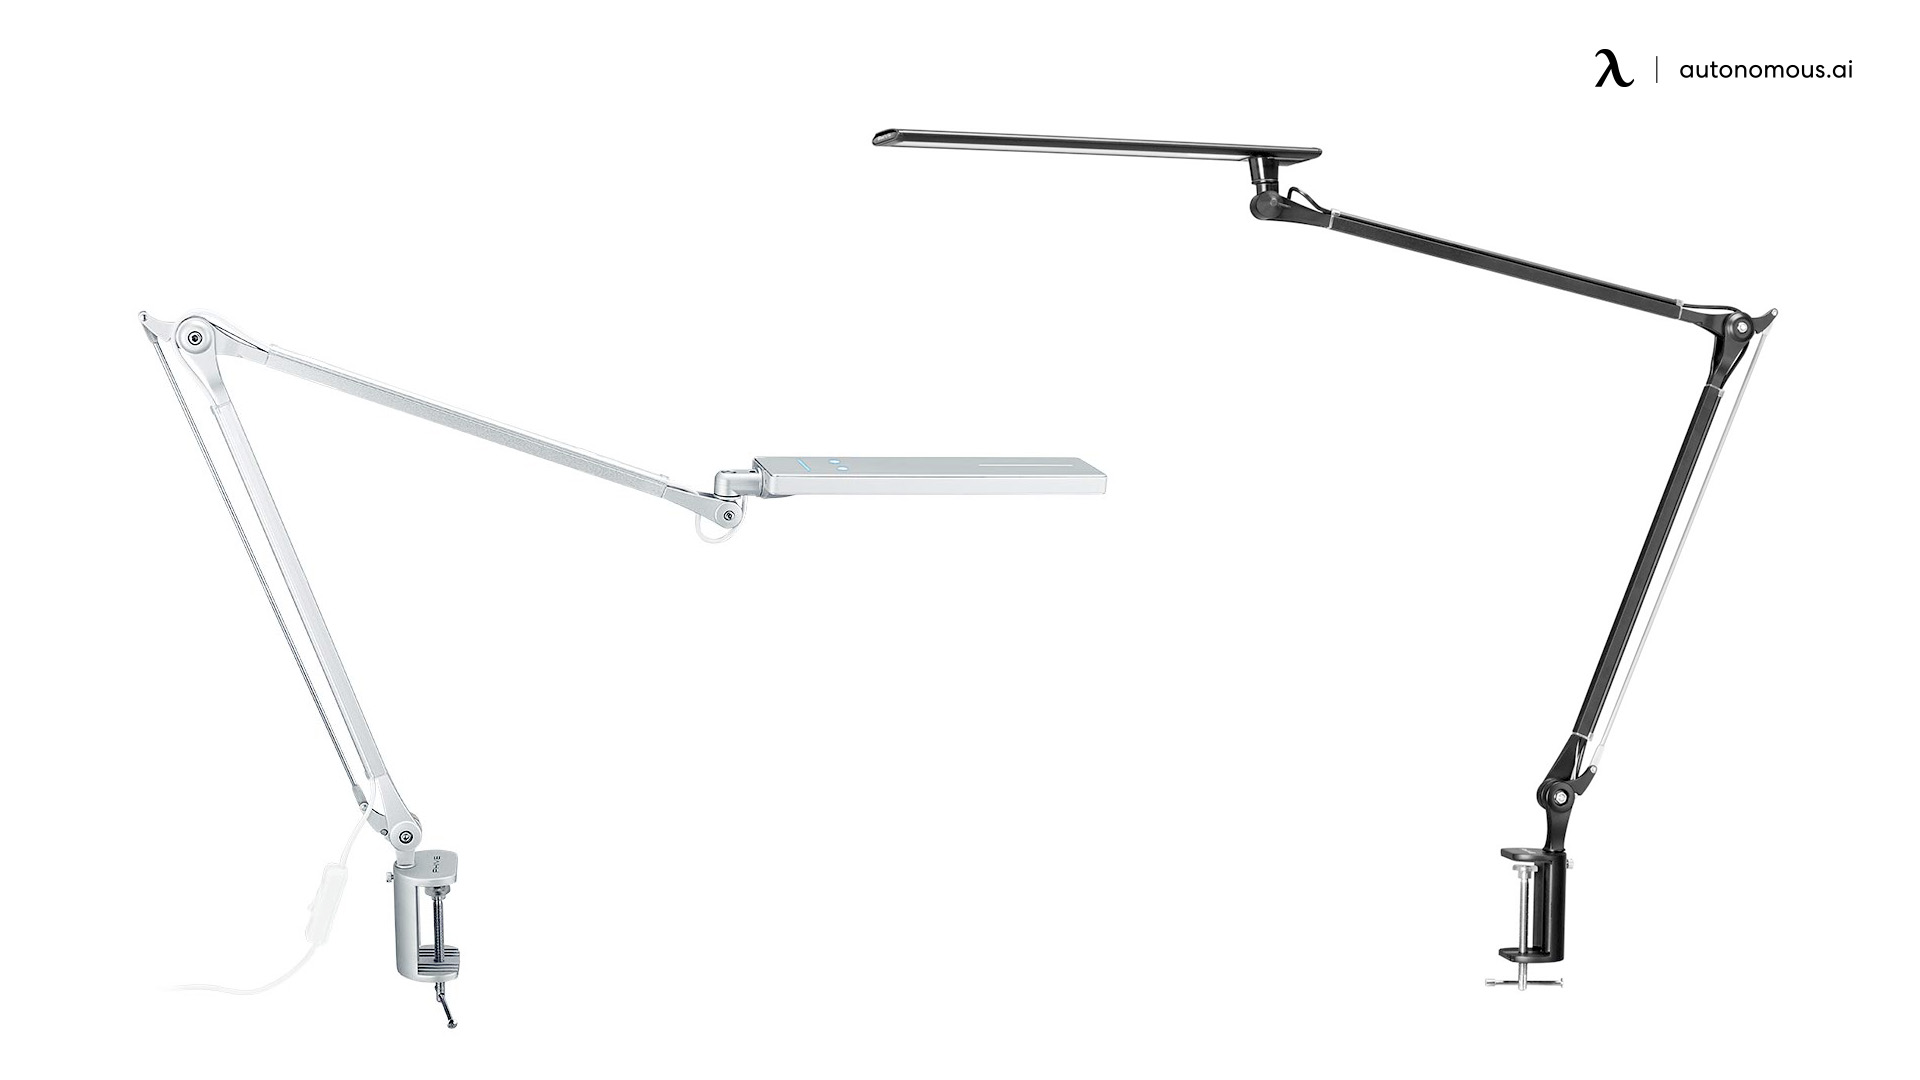 Phive Dimmable LED Desk Lamp